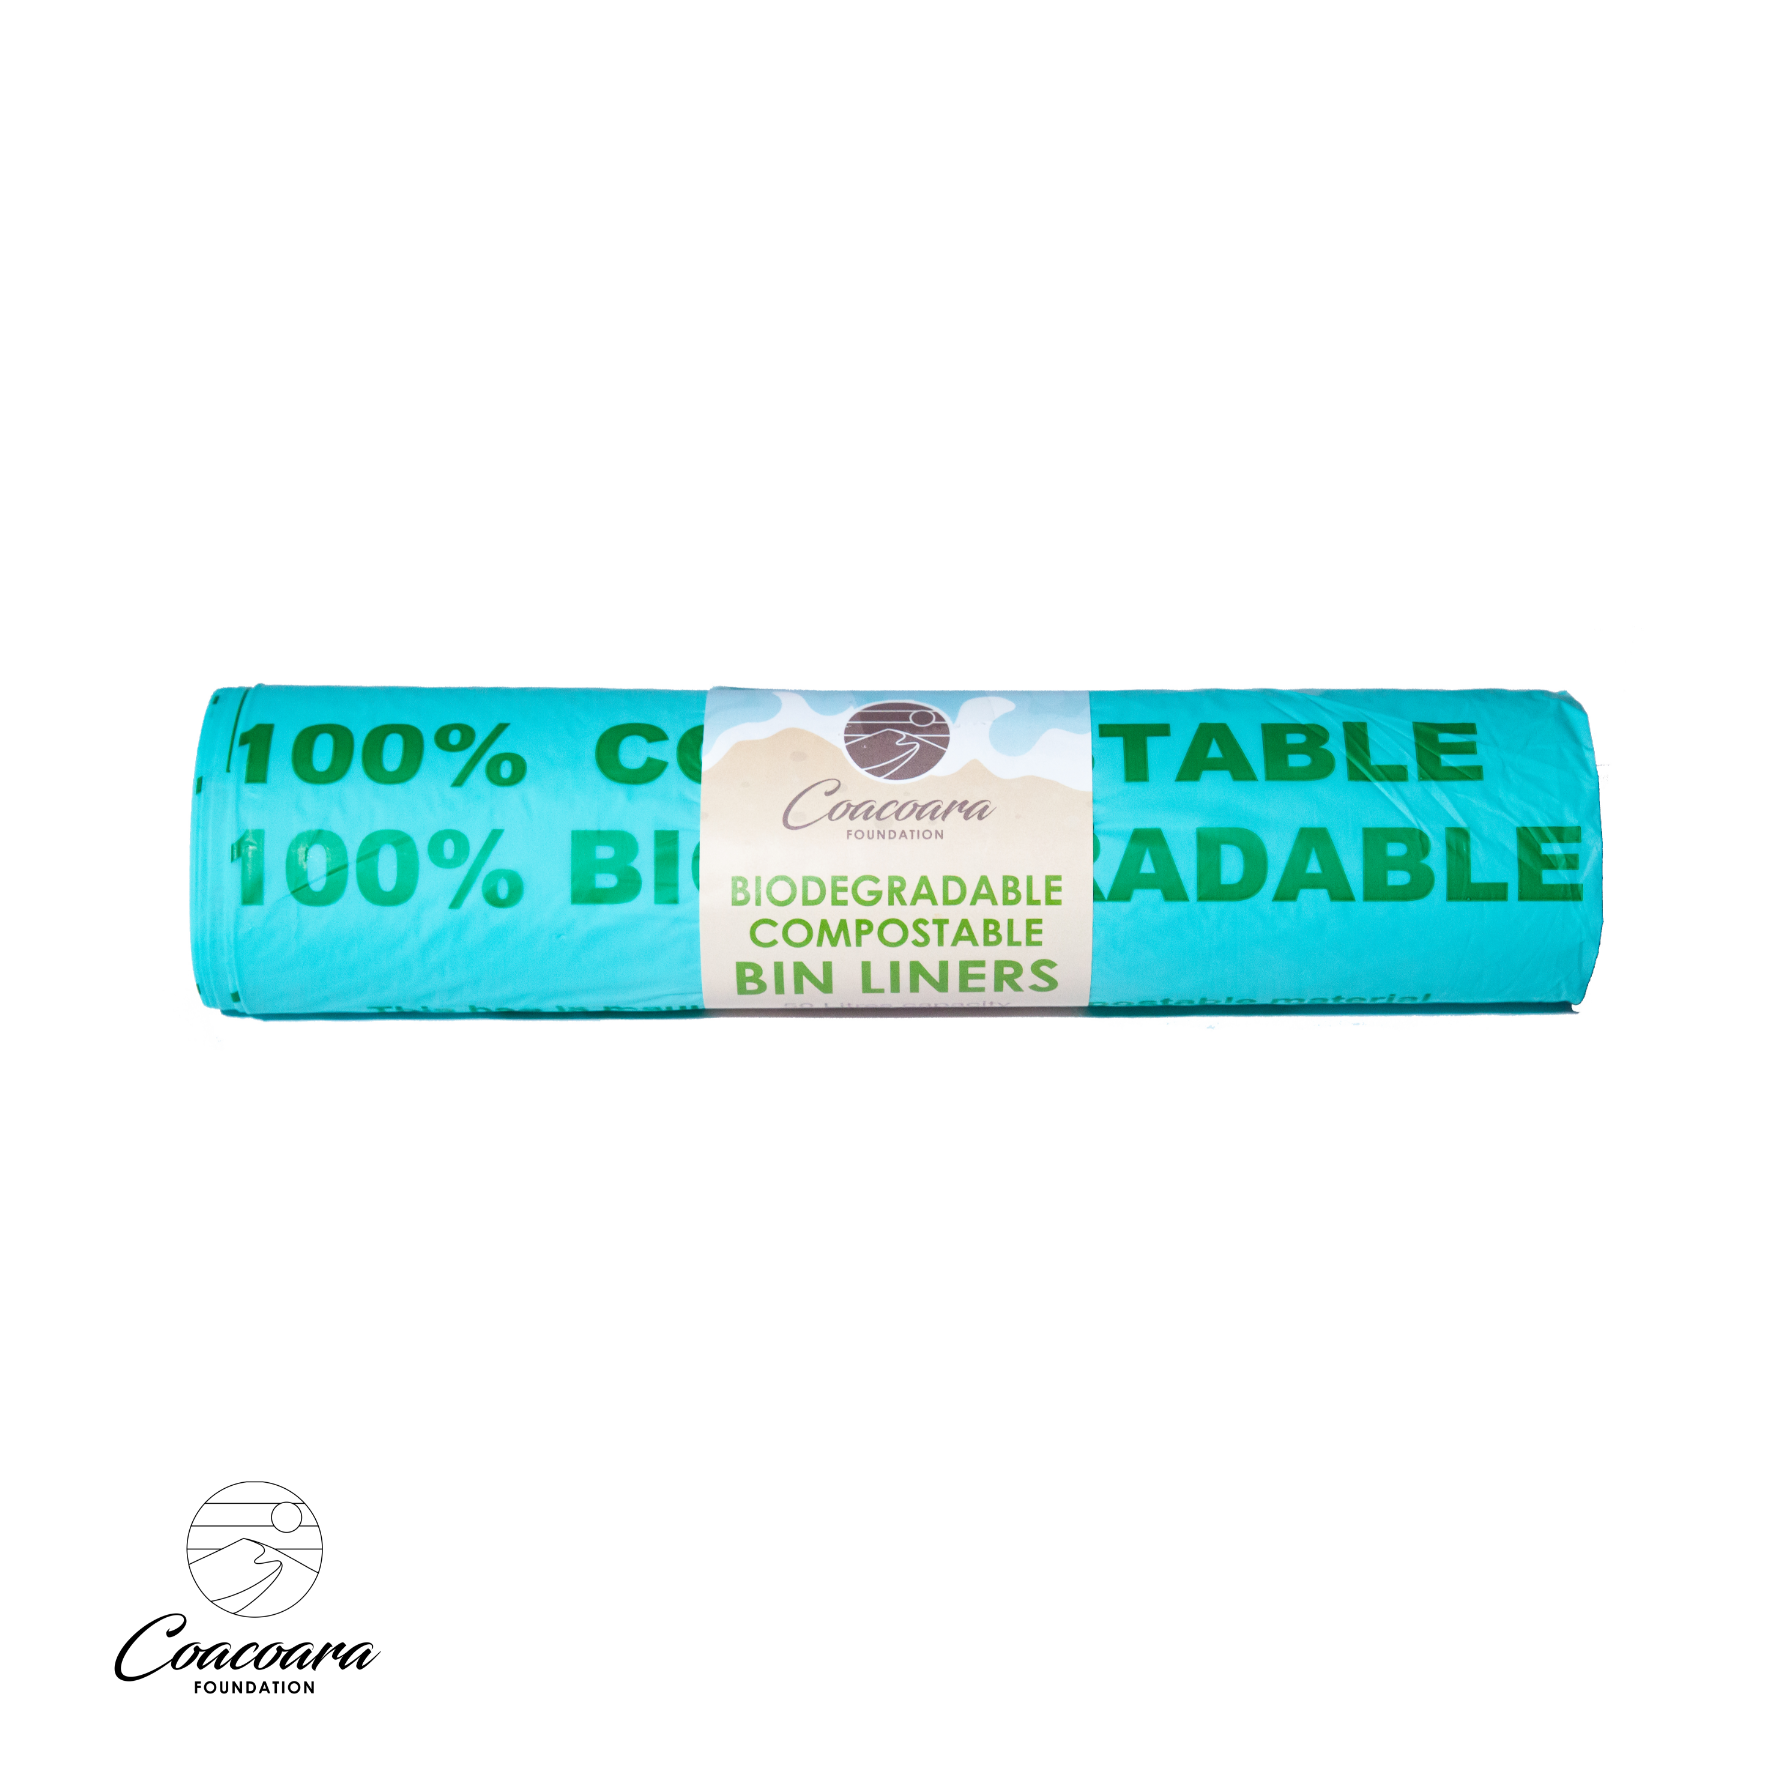 Bin Liners, corn starch, affordable, equilibrium, sustainable. compostable bin liners biodegradable compostable made in UK sustainable bin bags Coacoara